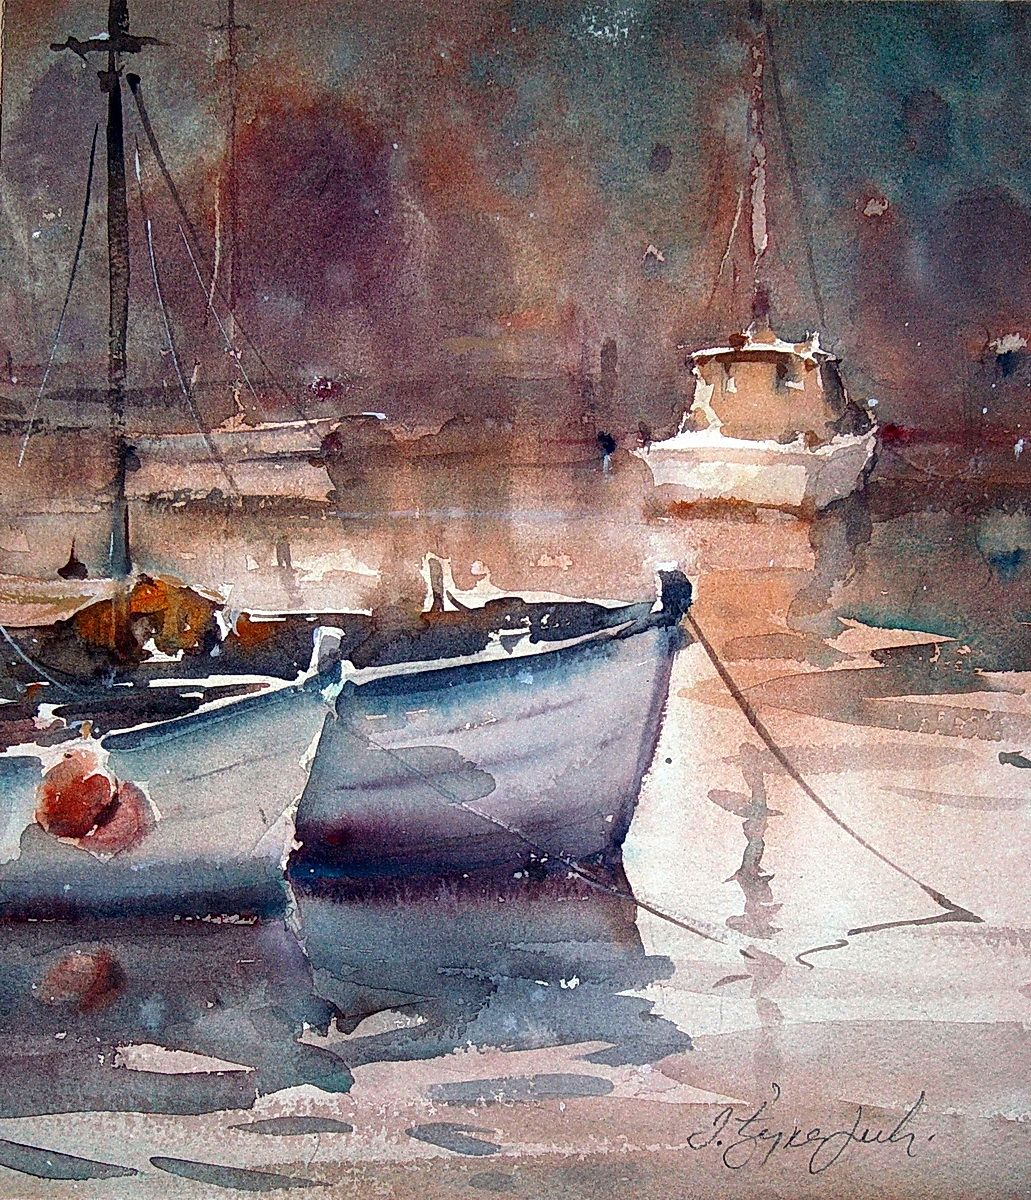 Watercolor books for sale - Find This Pin And More On Watercolor Art